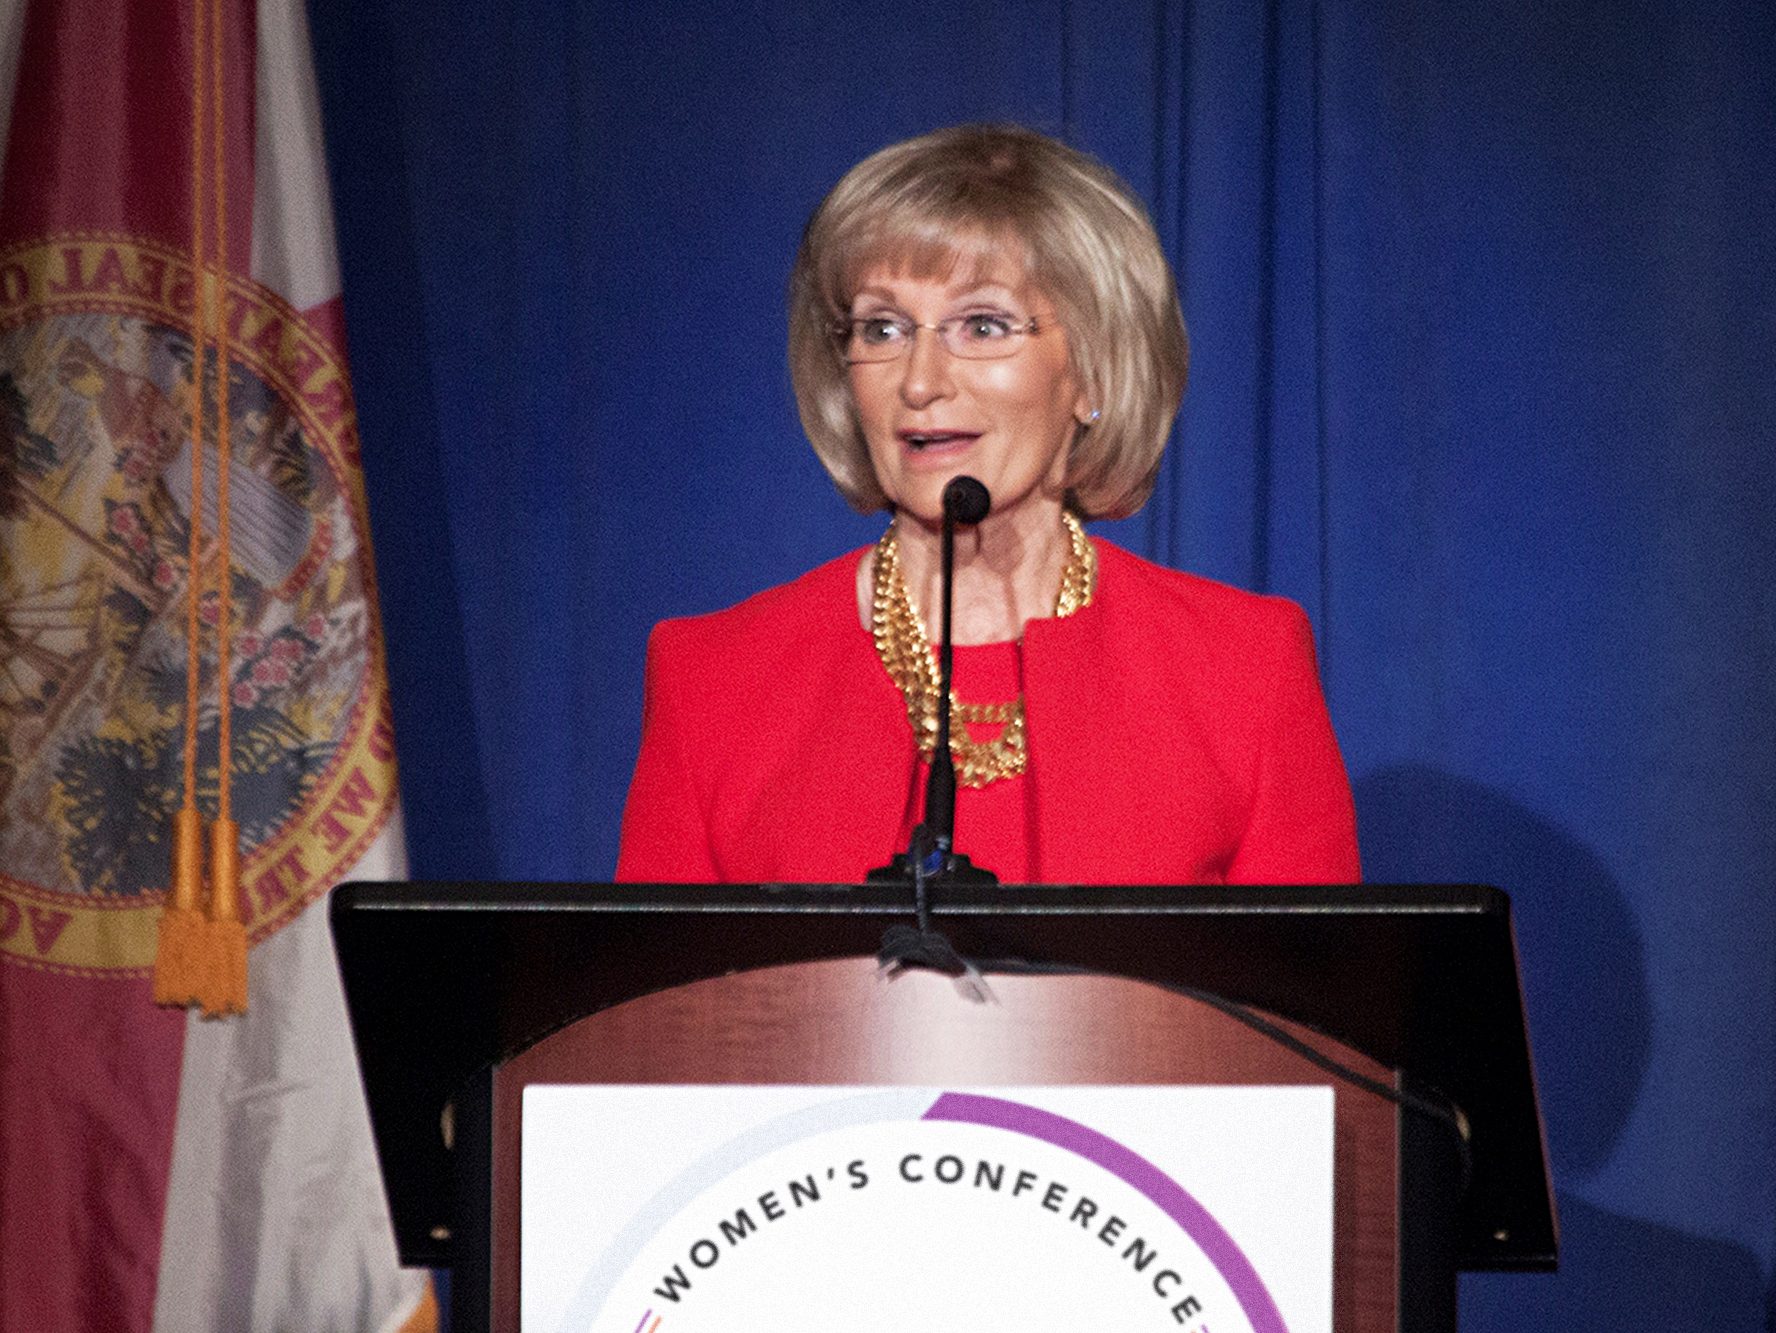 Women's Conference of Florida